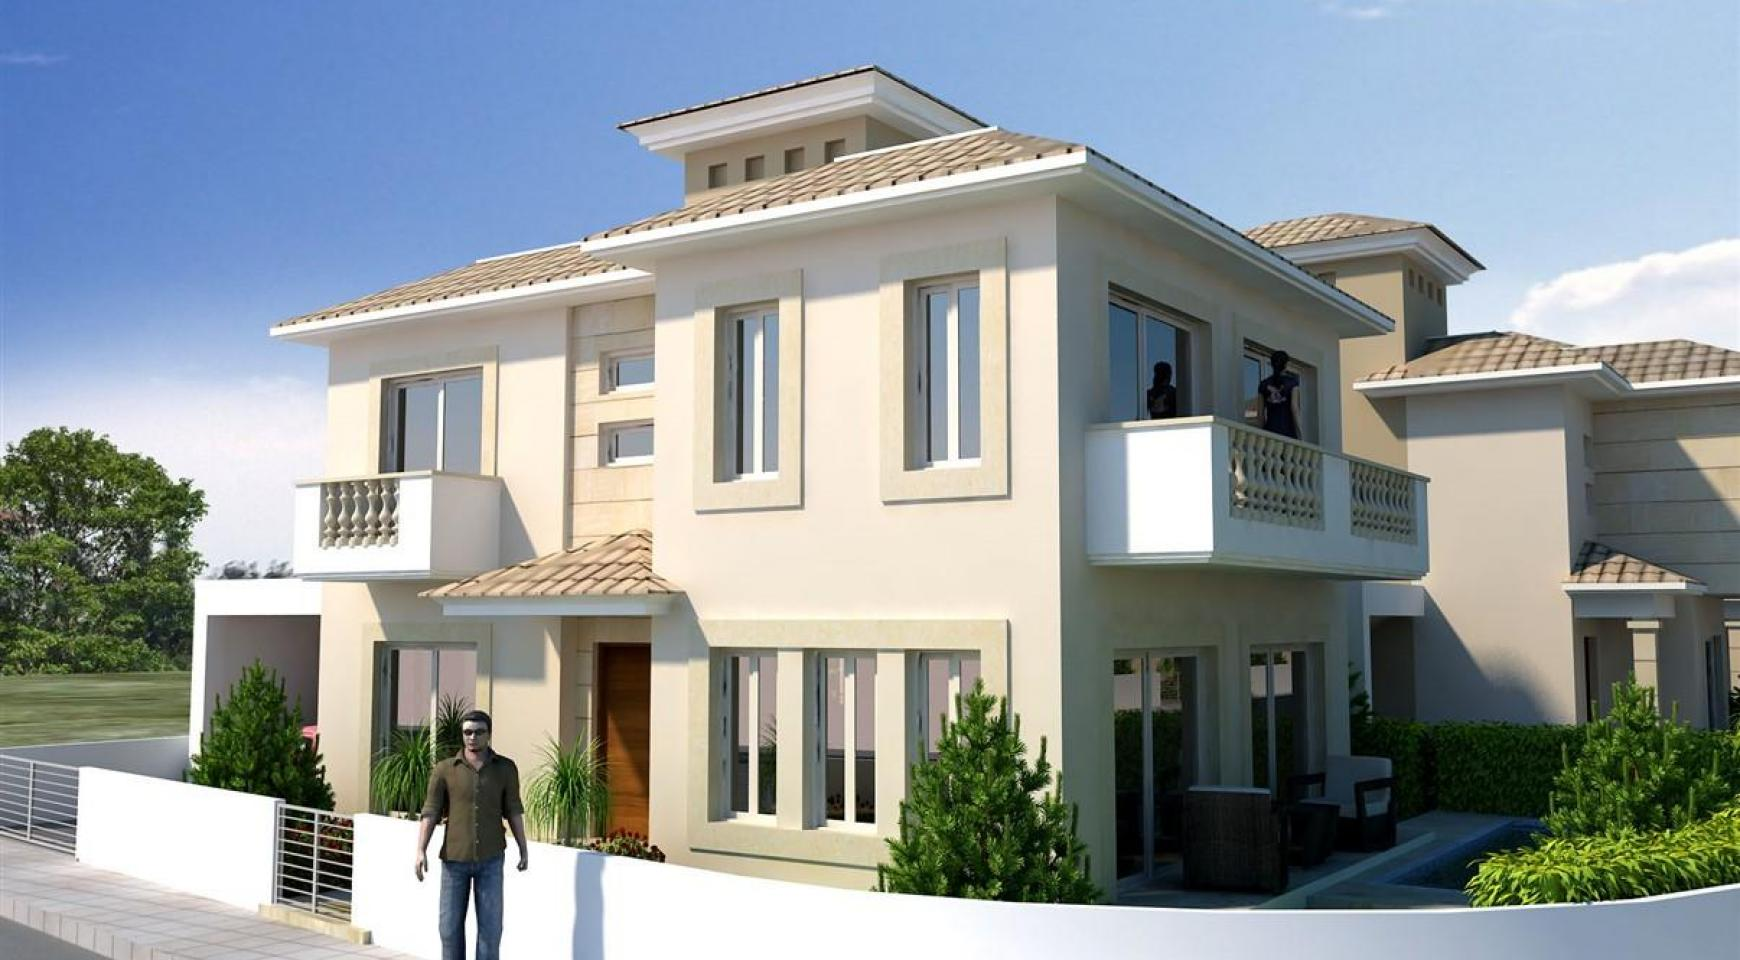 3 Bedroom Villa in a New Project - 5